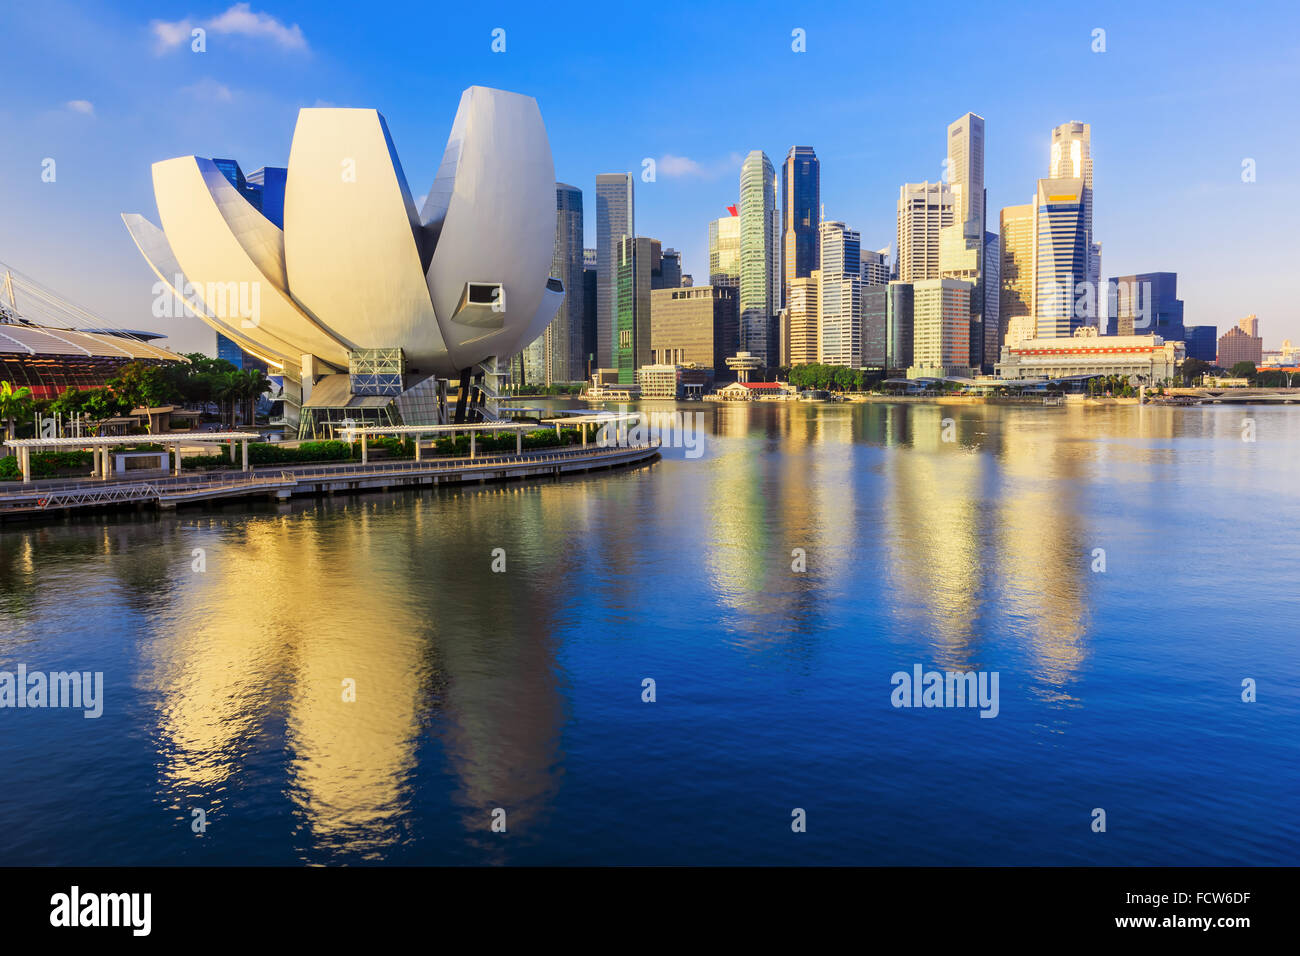 Singapur, Singapur. Marina Bay und die Skyline. Stockbild